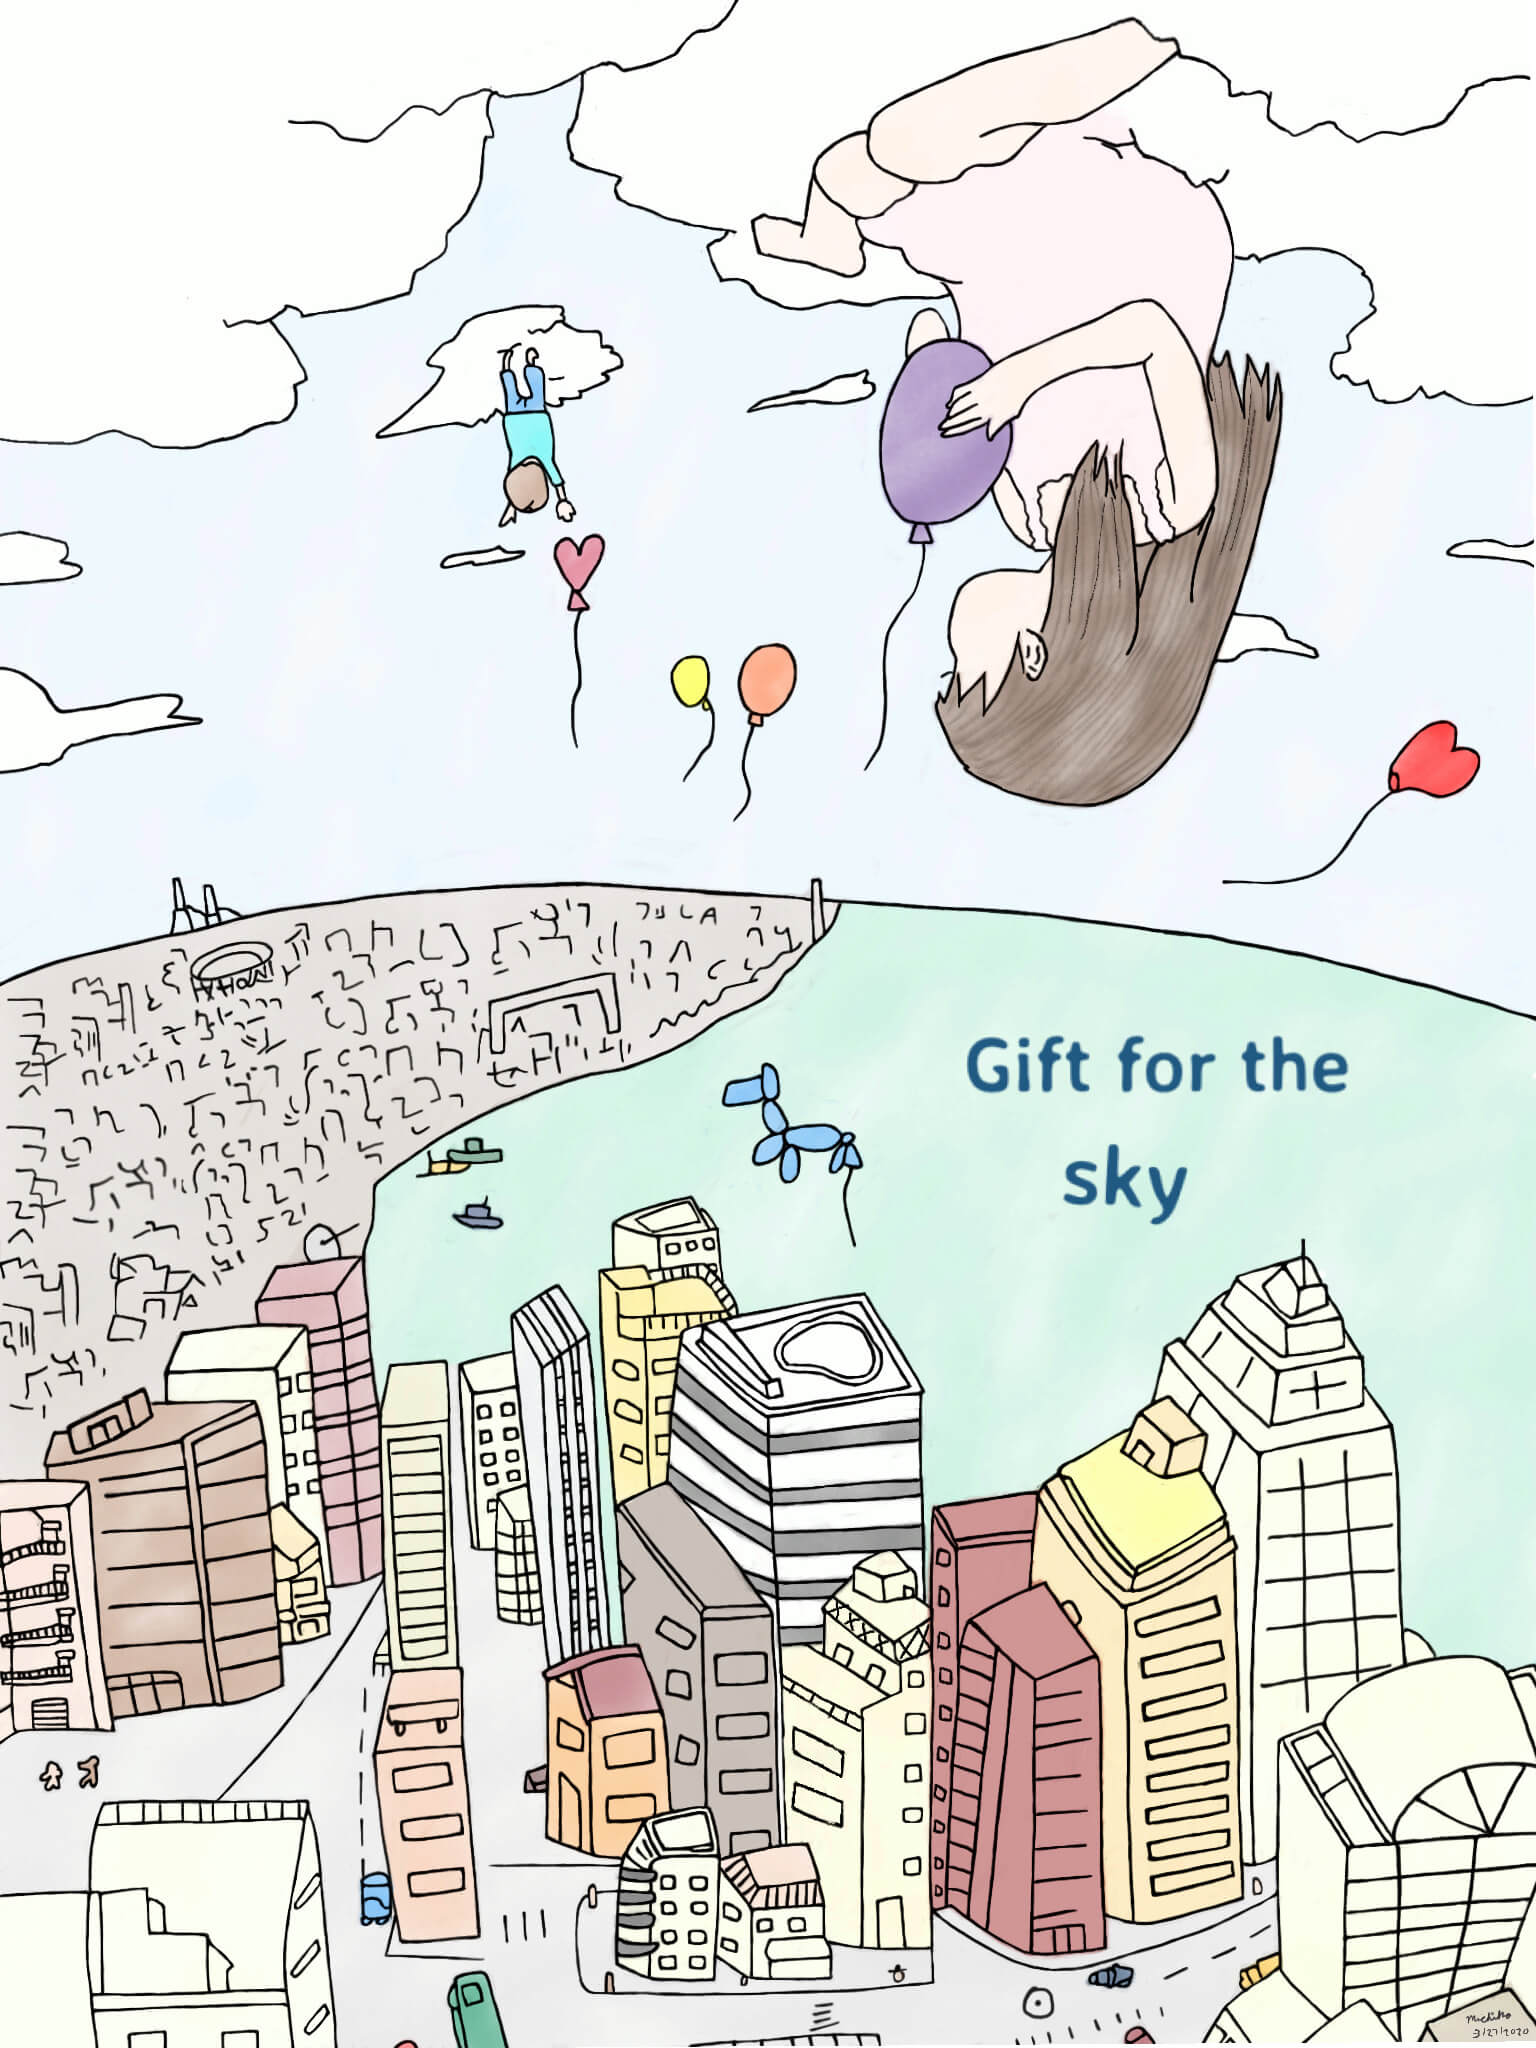 Gift for the sky